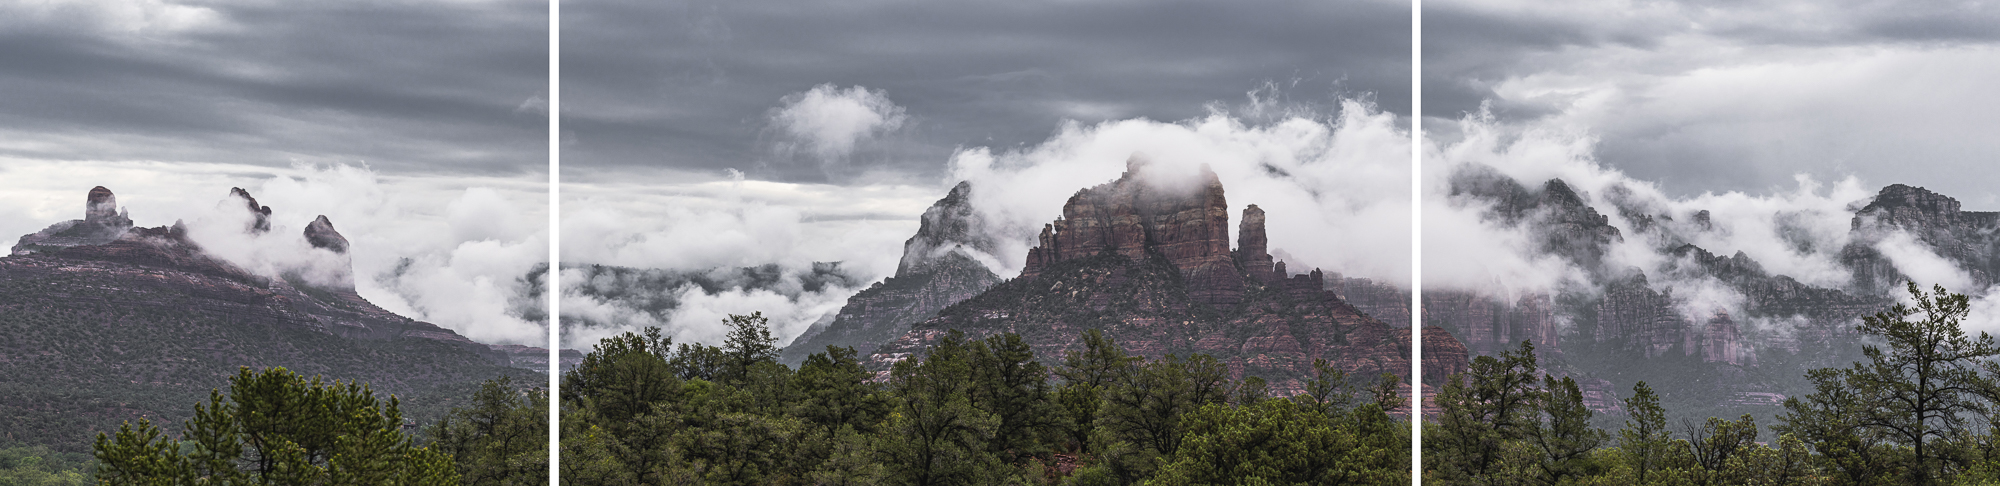 Tryptic: Monsoon Clouds Over the Mogollon Rim